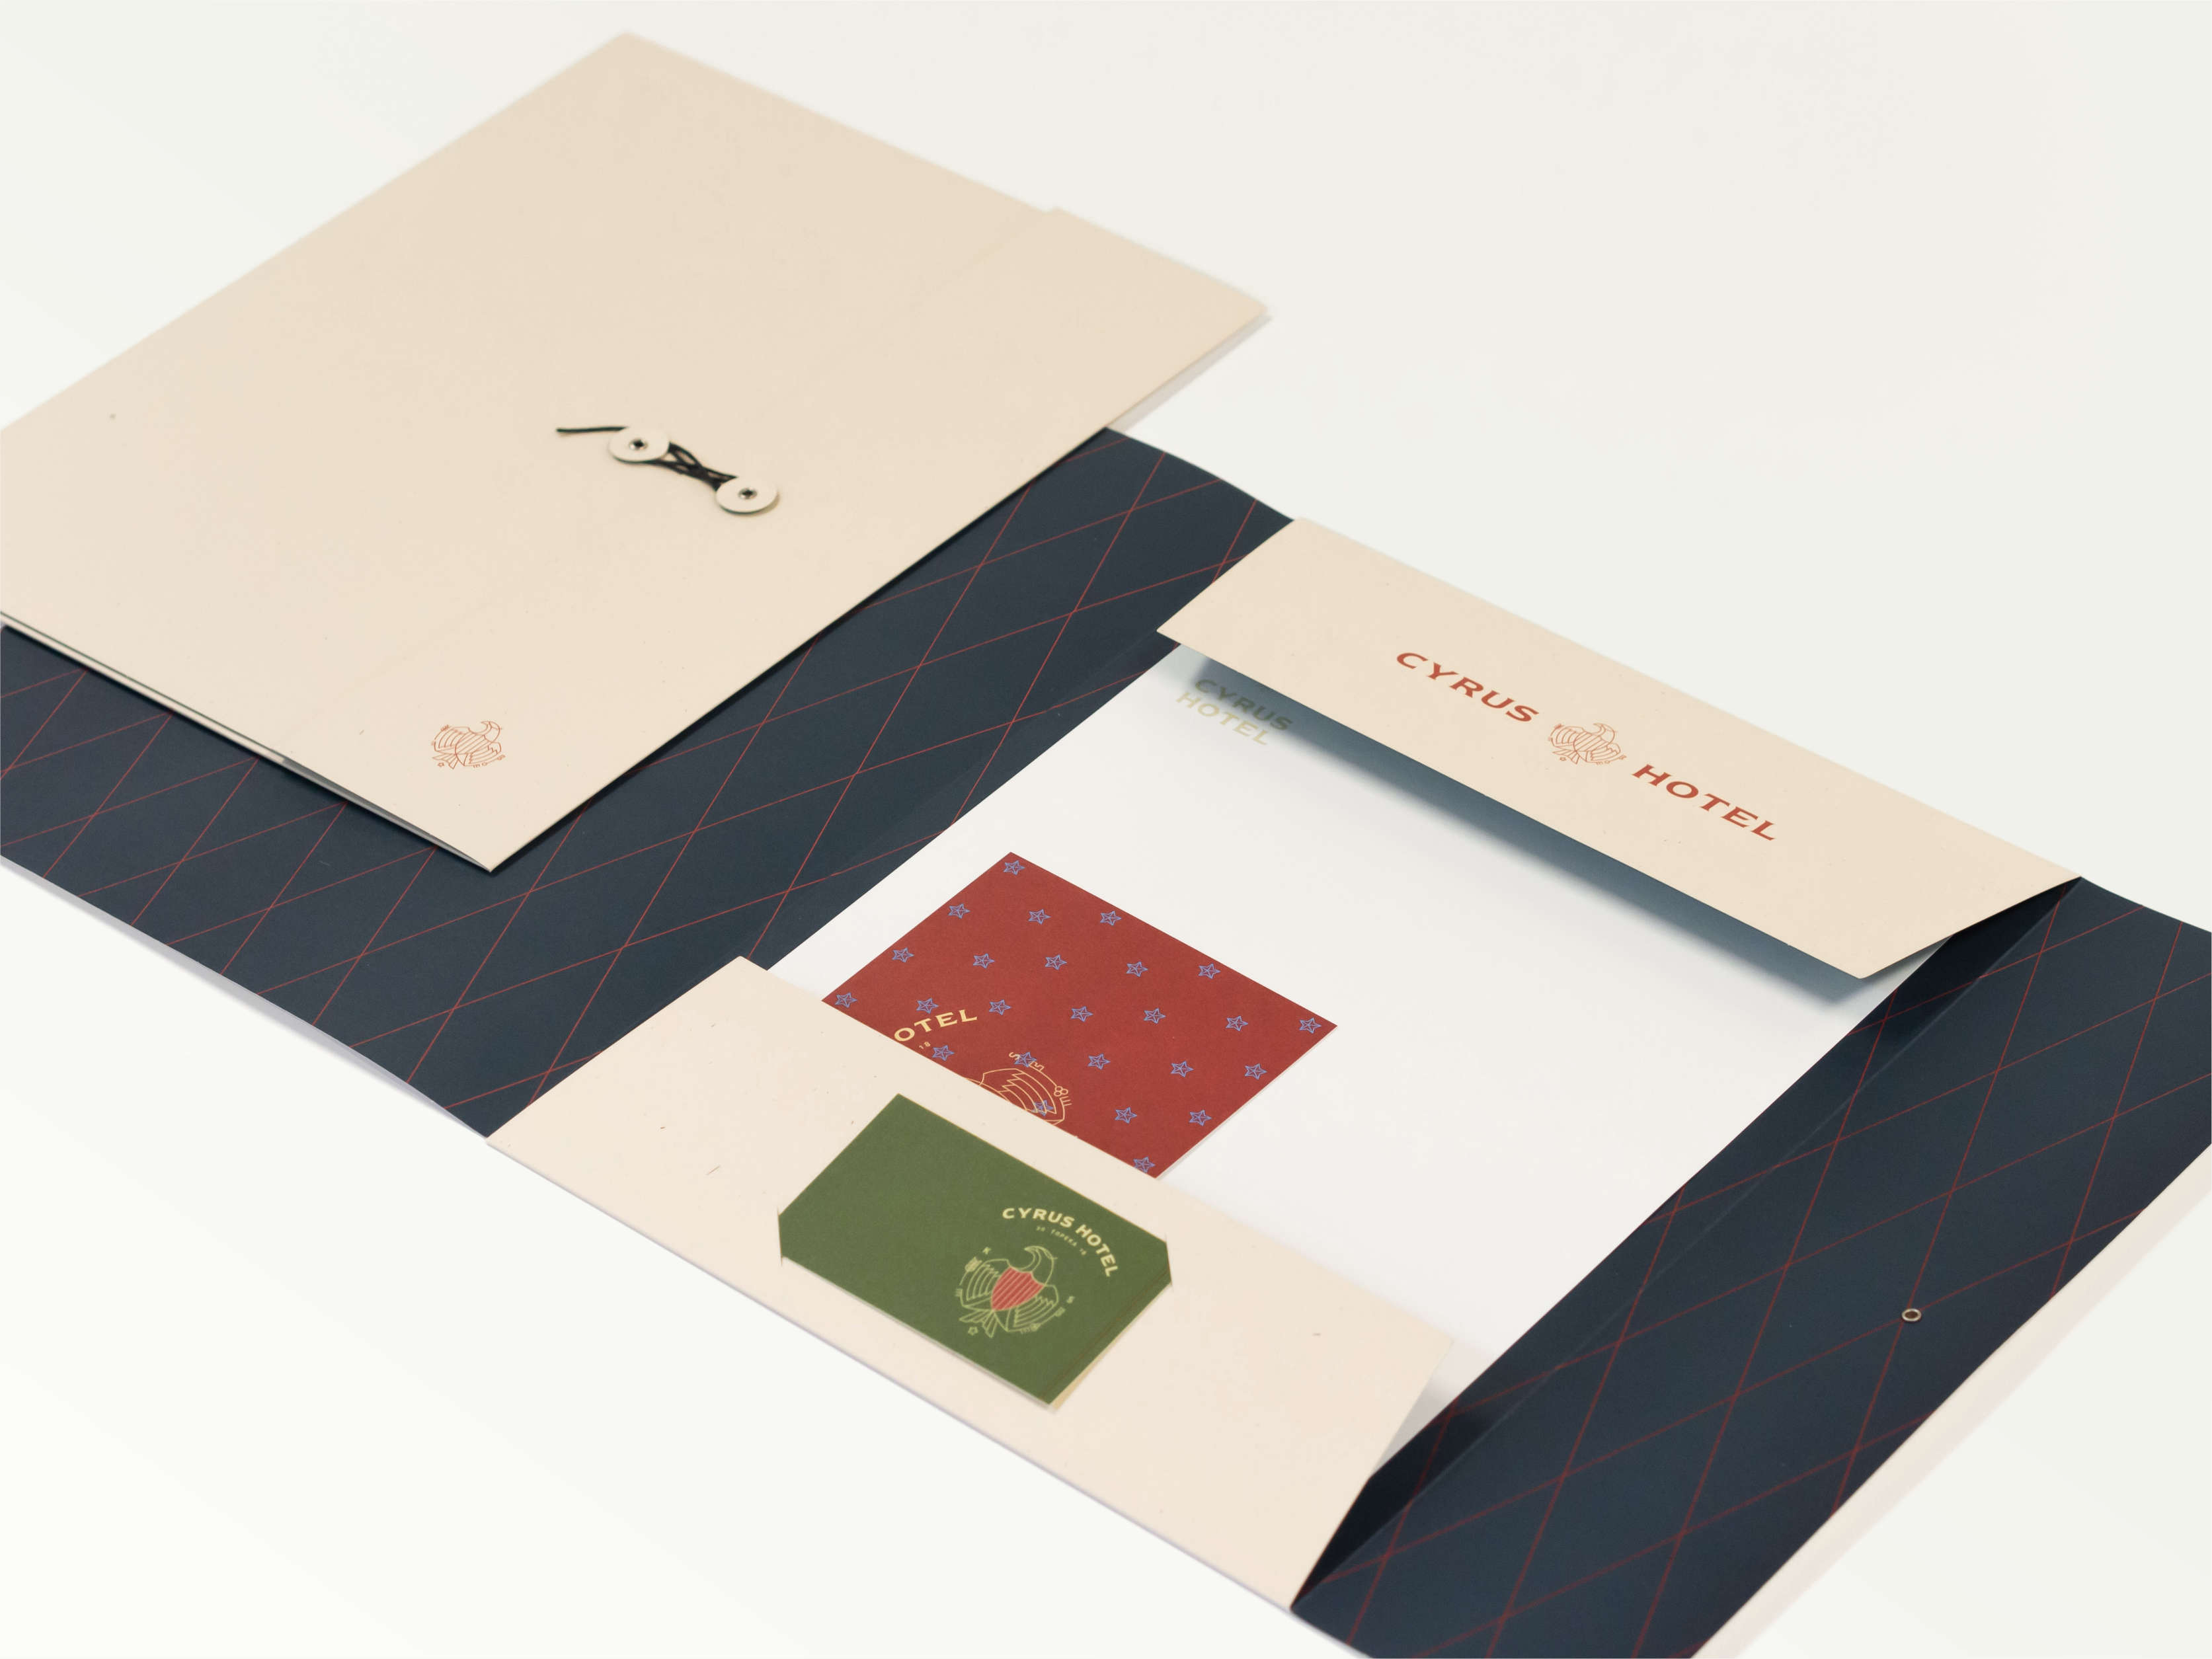 Spread of Cyrus hotel guest room compendium and envelope.